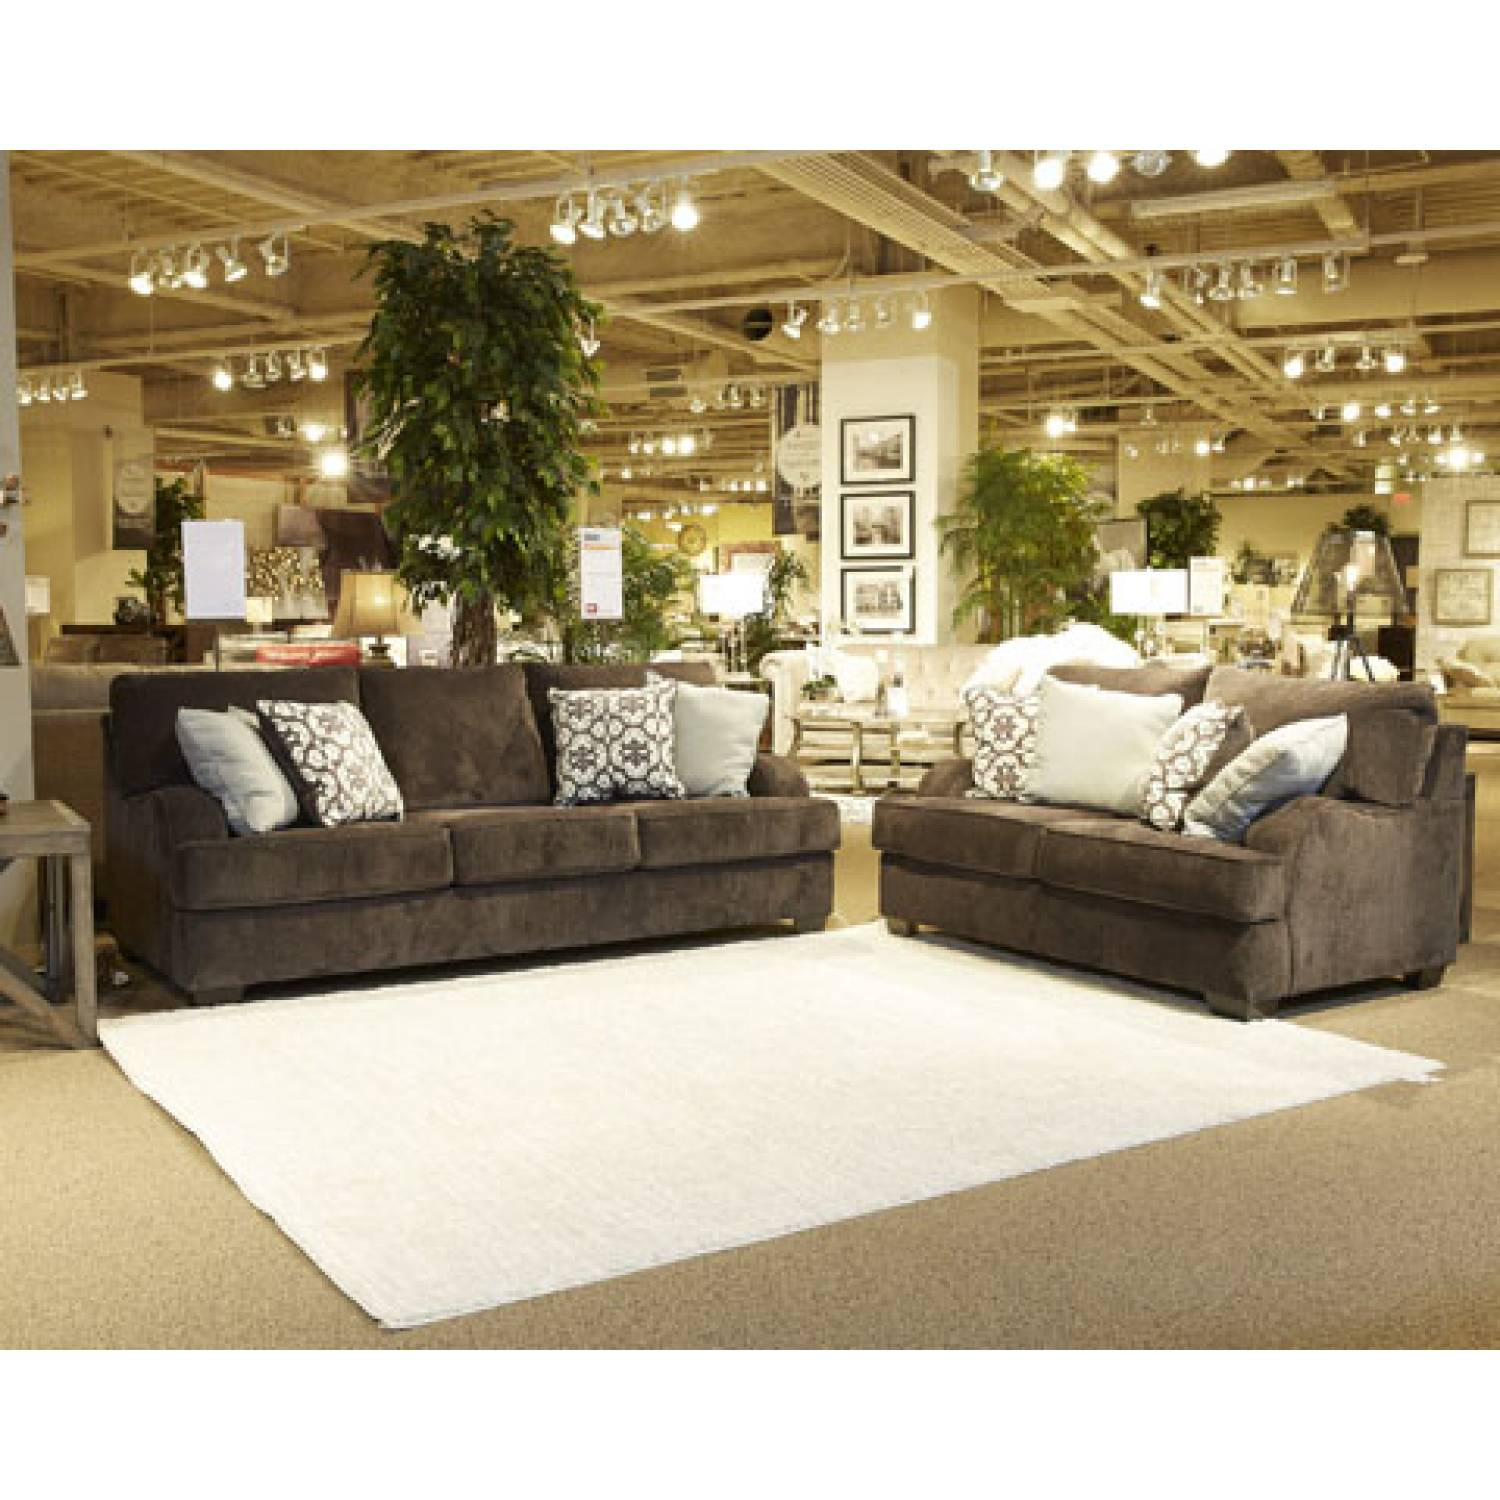 Wondrous 14101 Charenton 2Pc Sets Sofa Loveseat Creativecarmelina Interior Chair Design Creativecarmelinacom